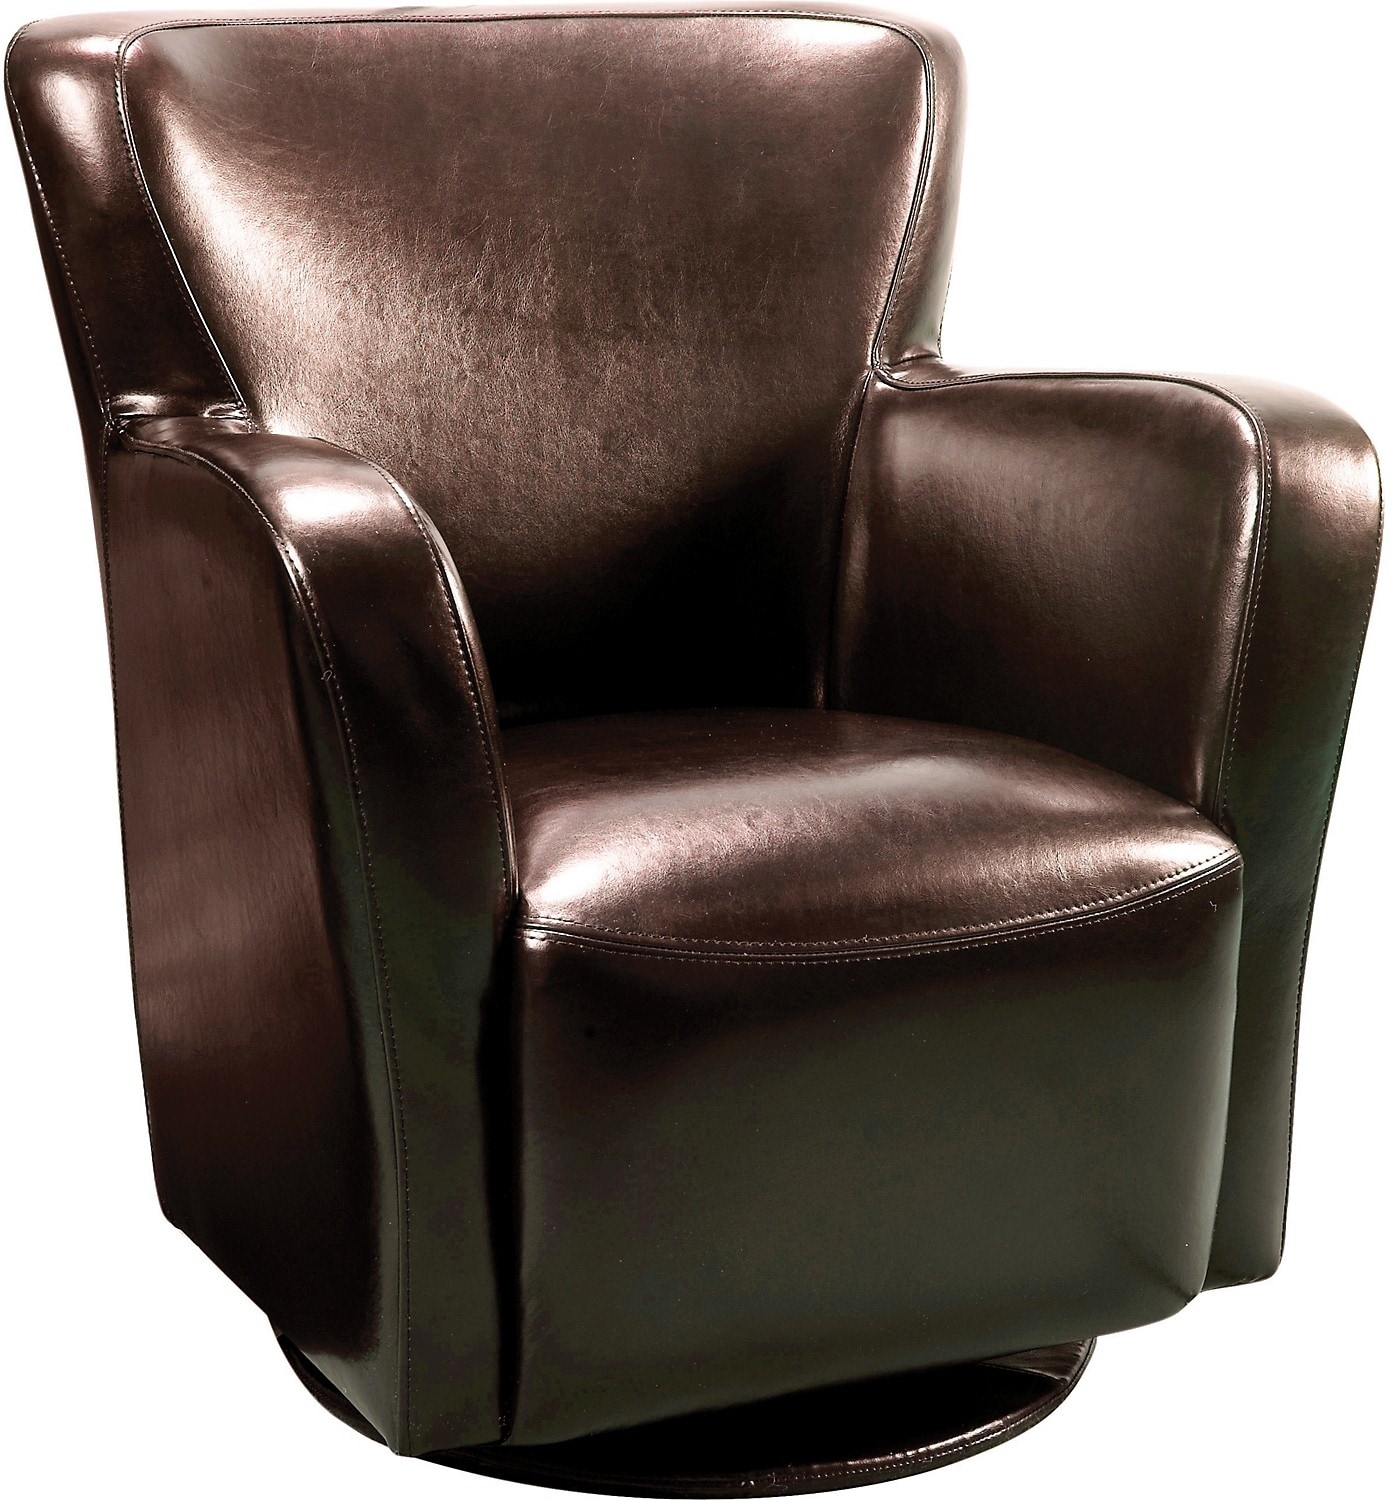 Bonded Leather Swivel Chair - Brown